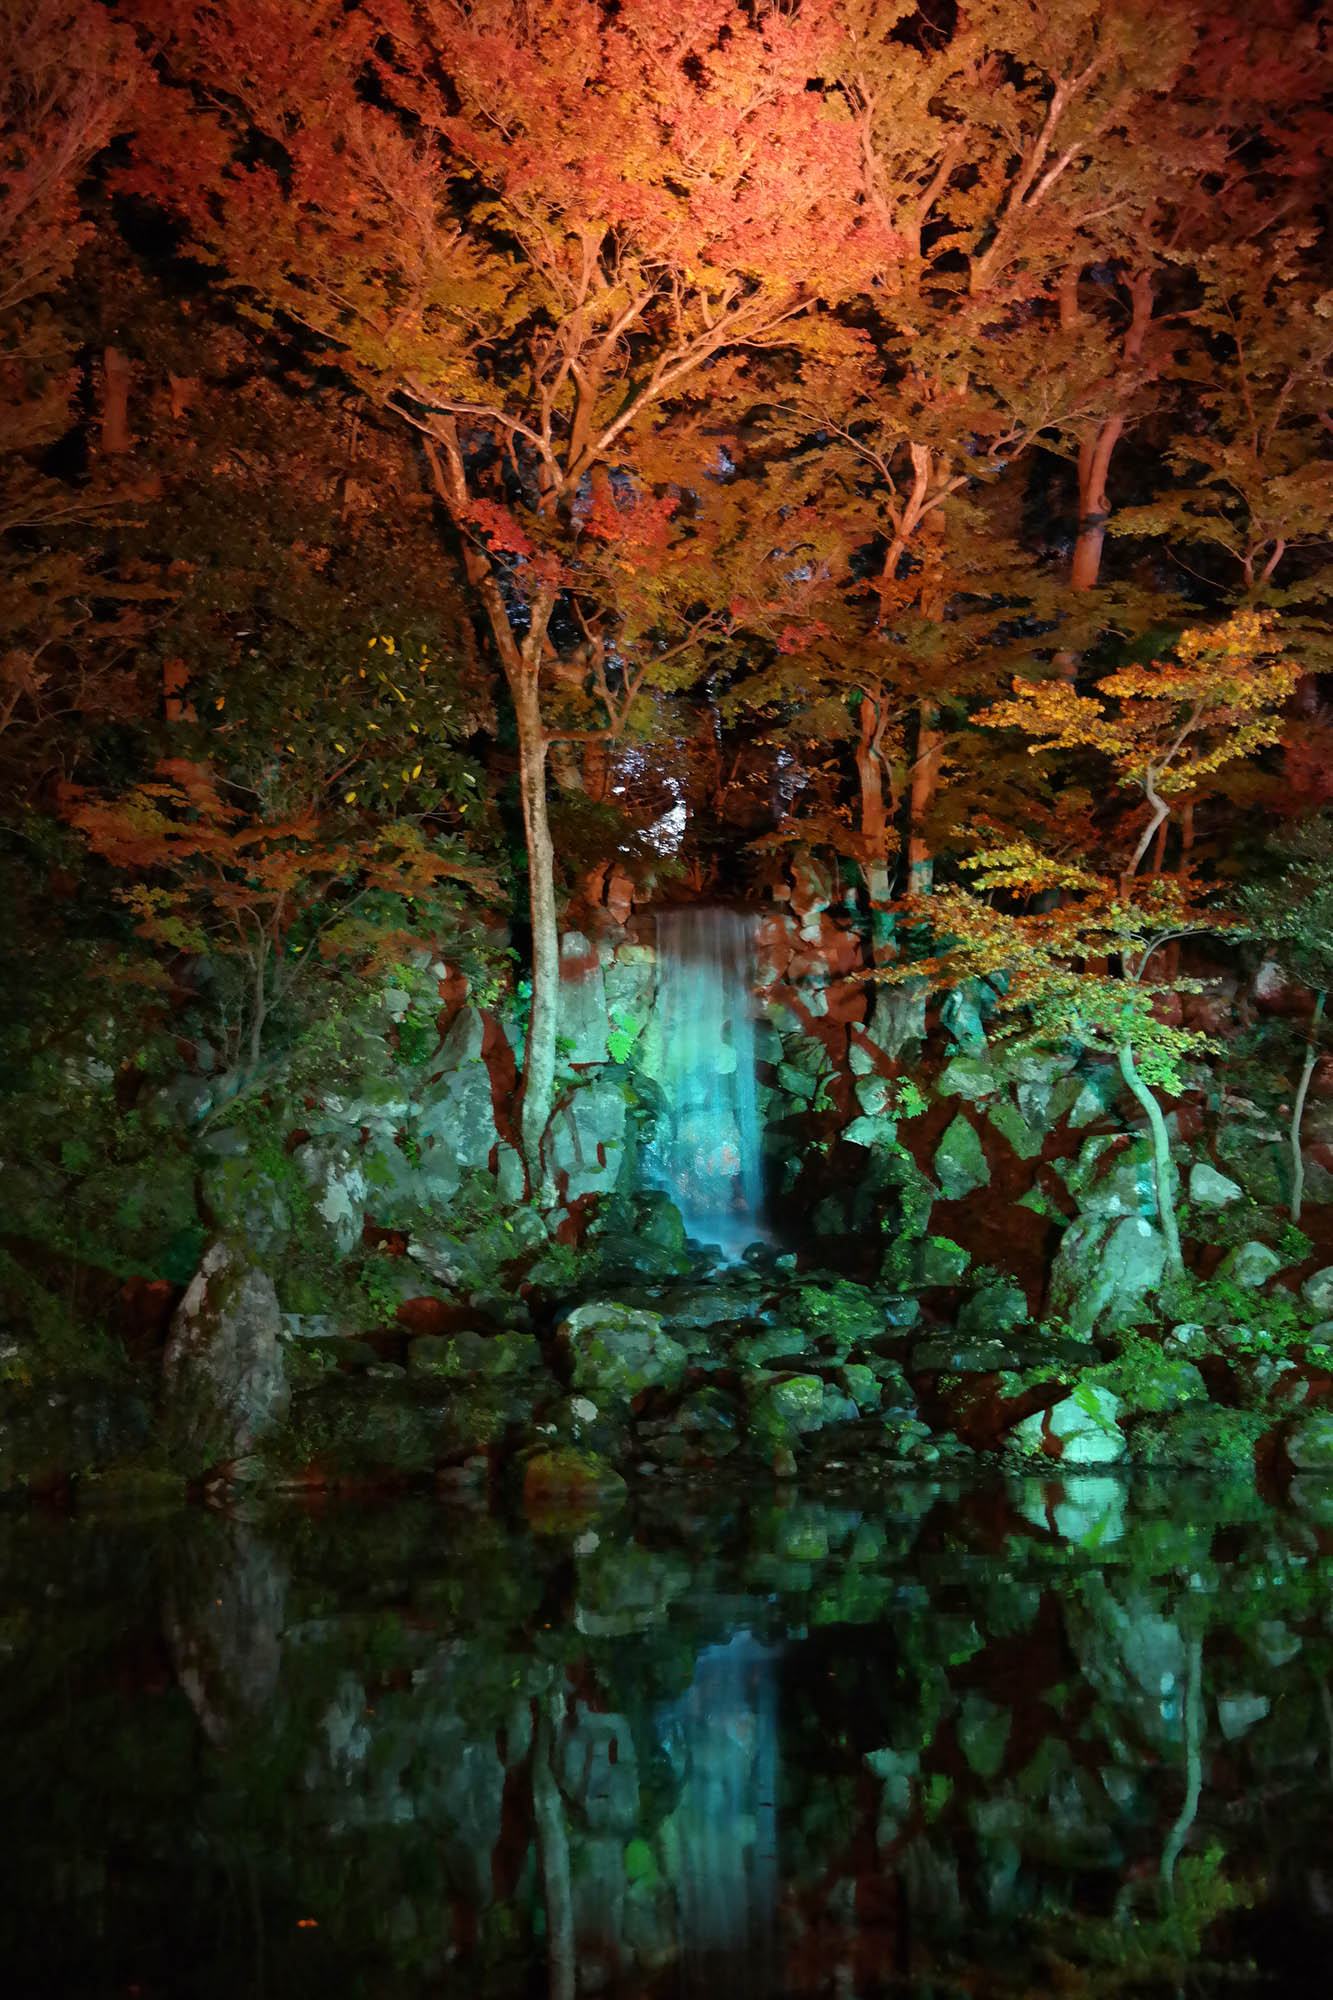 Japanase Garden at night